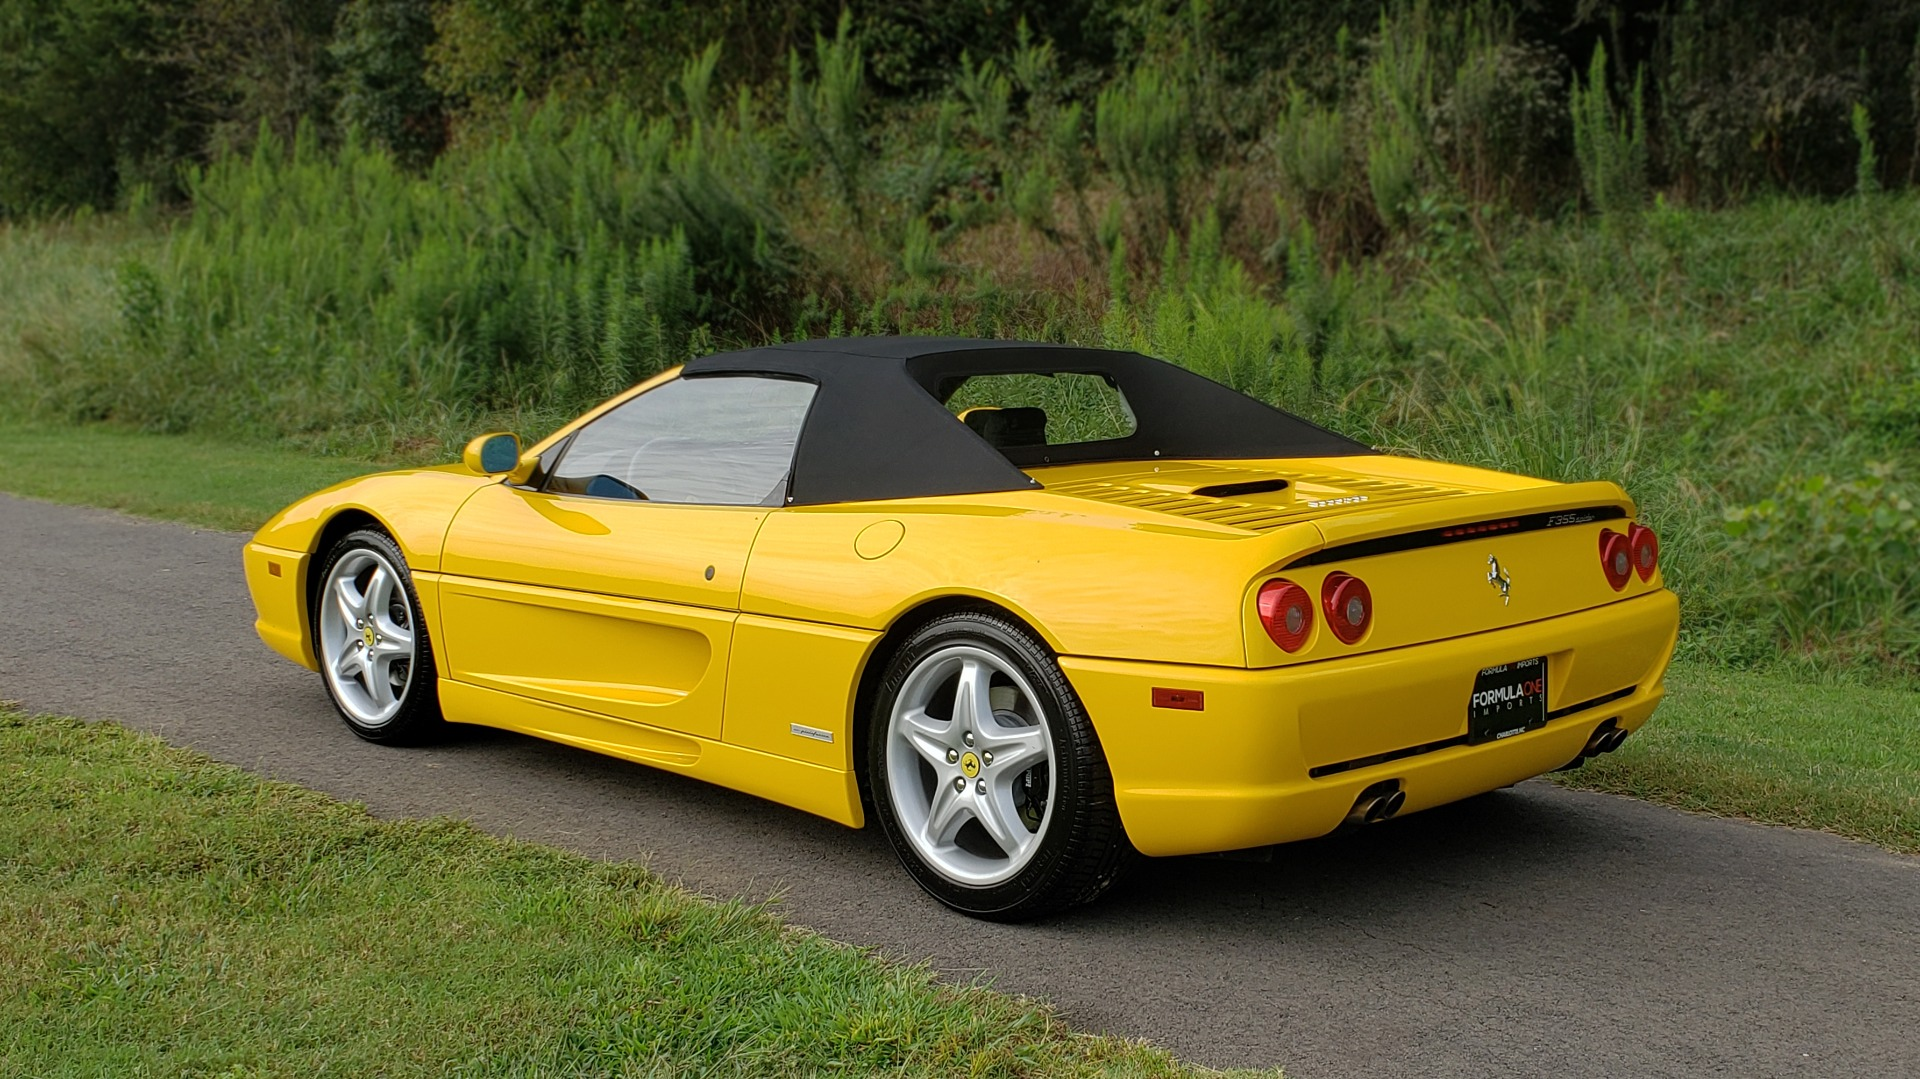 Used 1996 Ferrari F355 SPIDER / GATED 6-SPEED MANUAL / LOW MILES / NEW TIRES for sale $97,999 at Formula Imports in Charlotte NC 28227 8